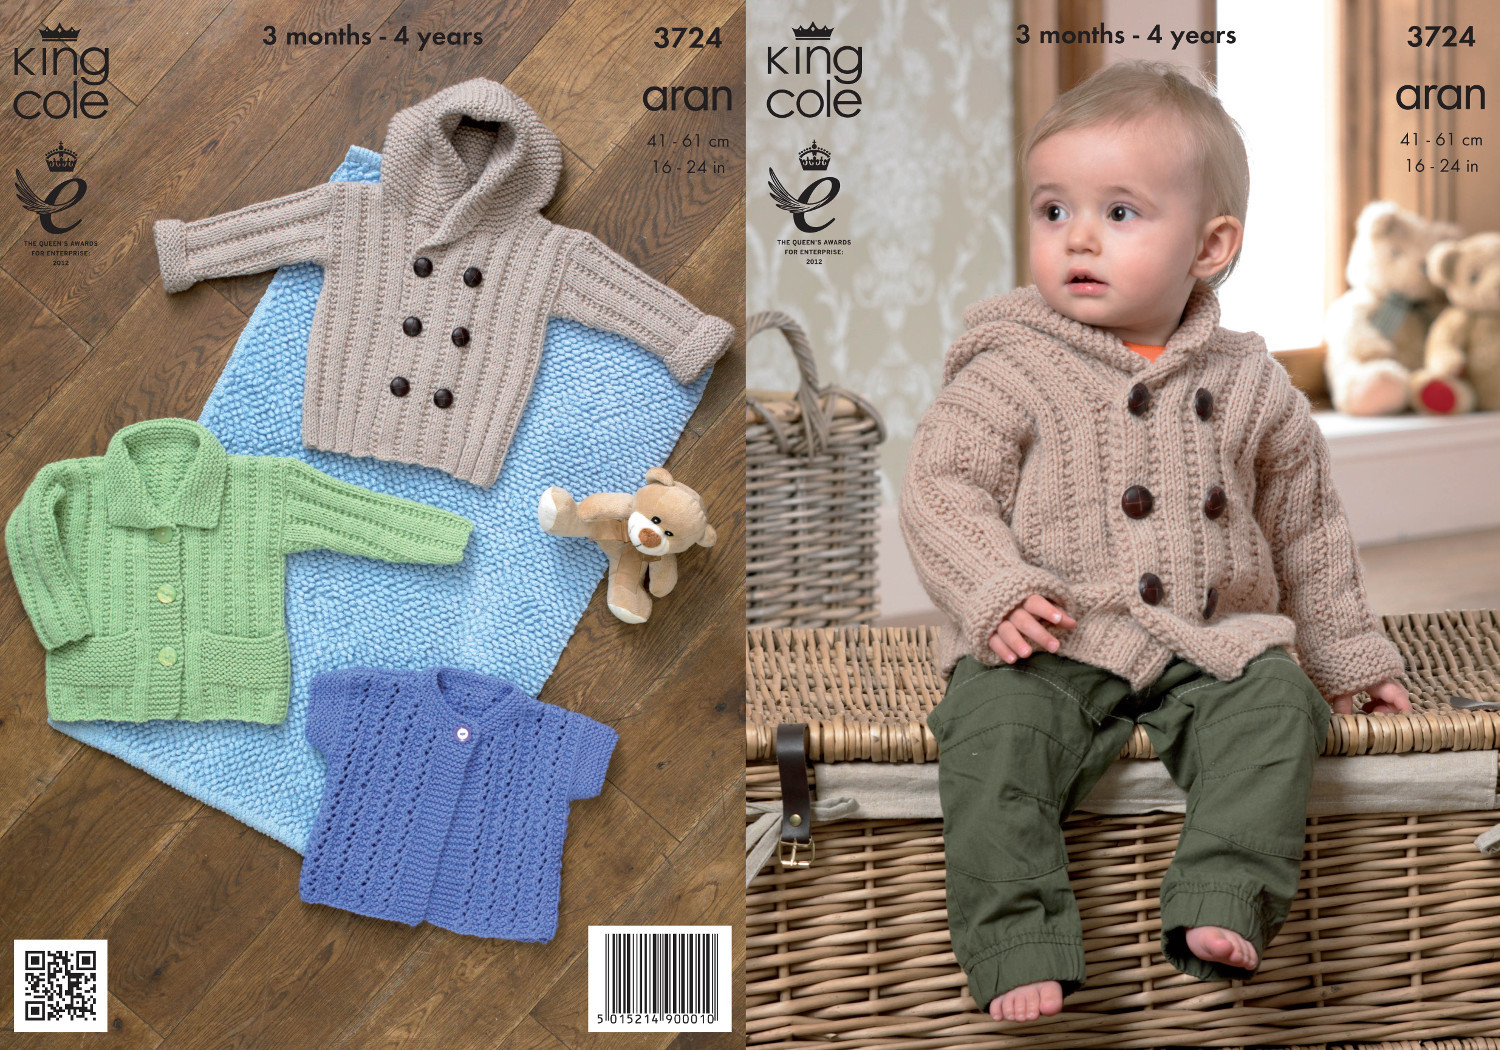 King Cole Baby Aran Knitting Pattern Kids Hooded Coat Jacket Lacy ...